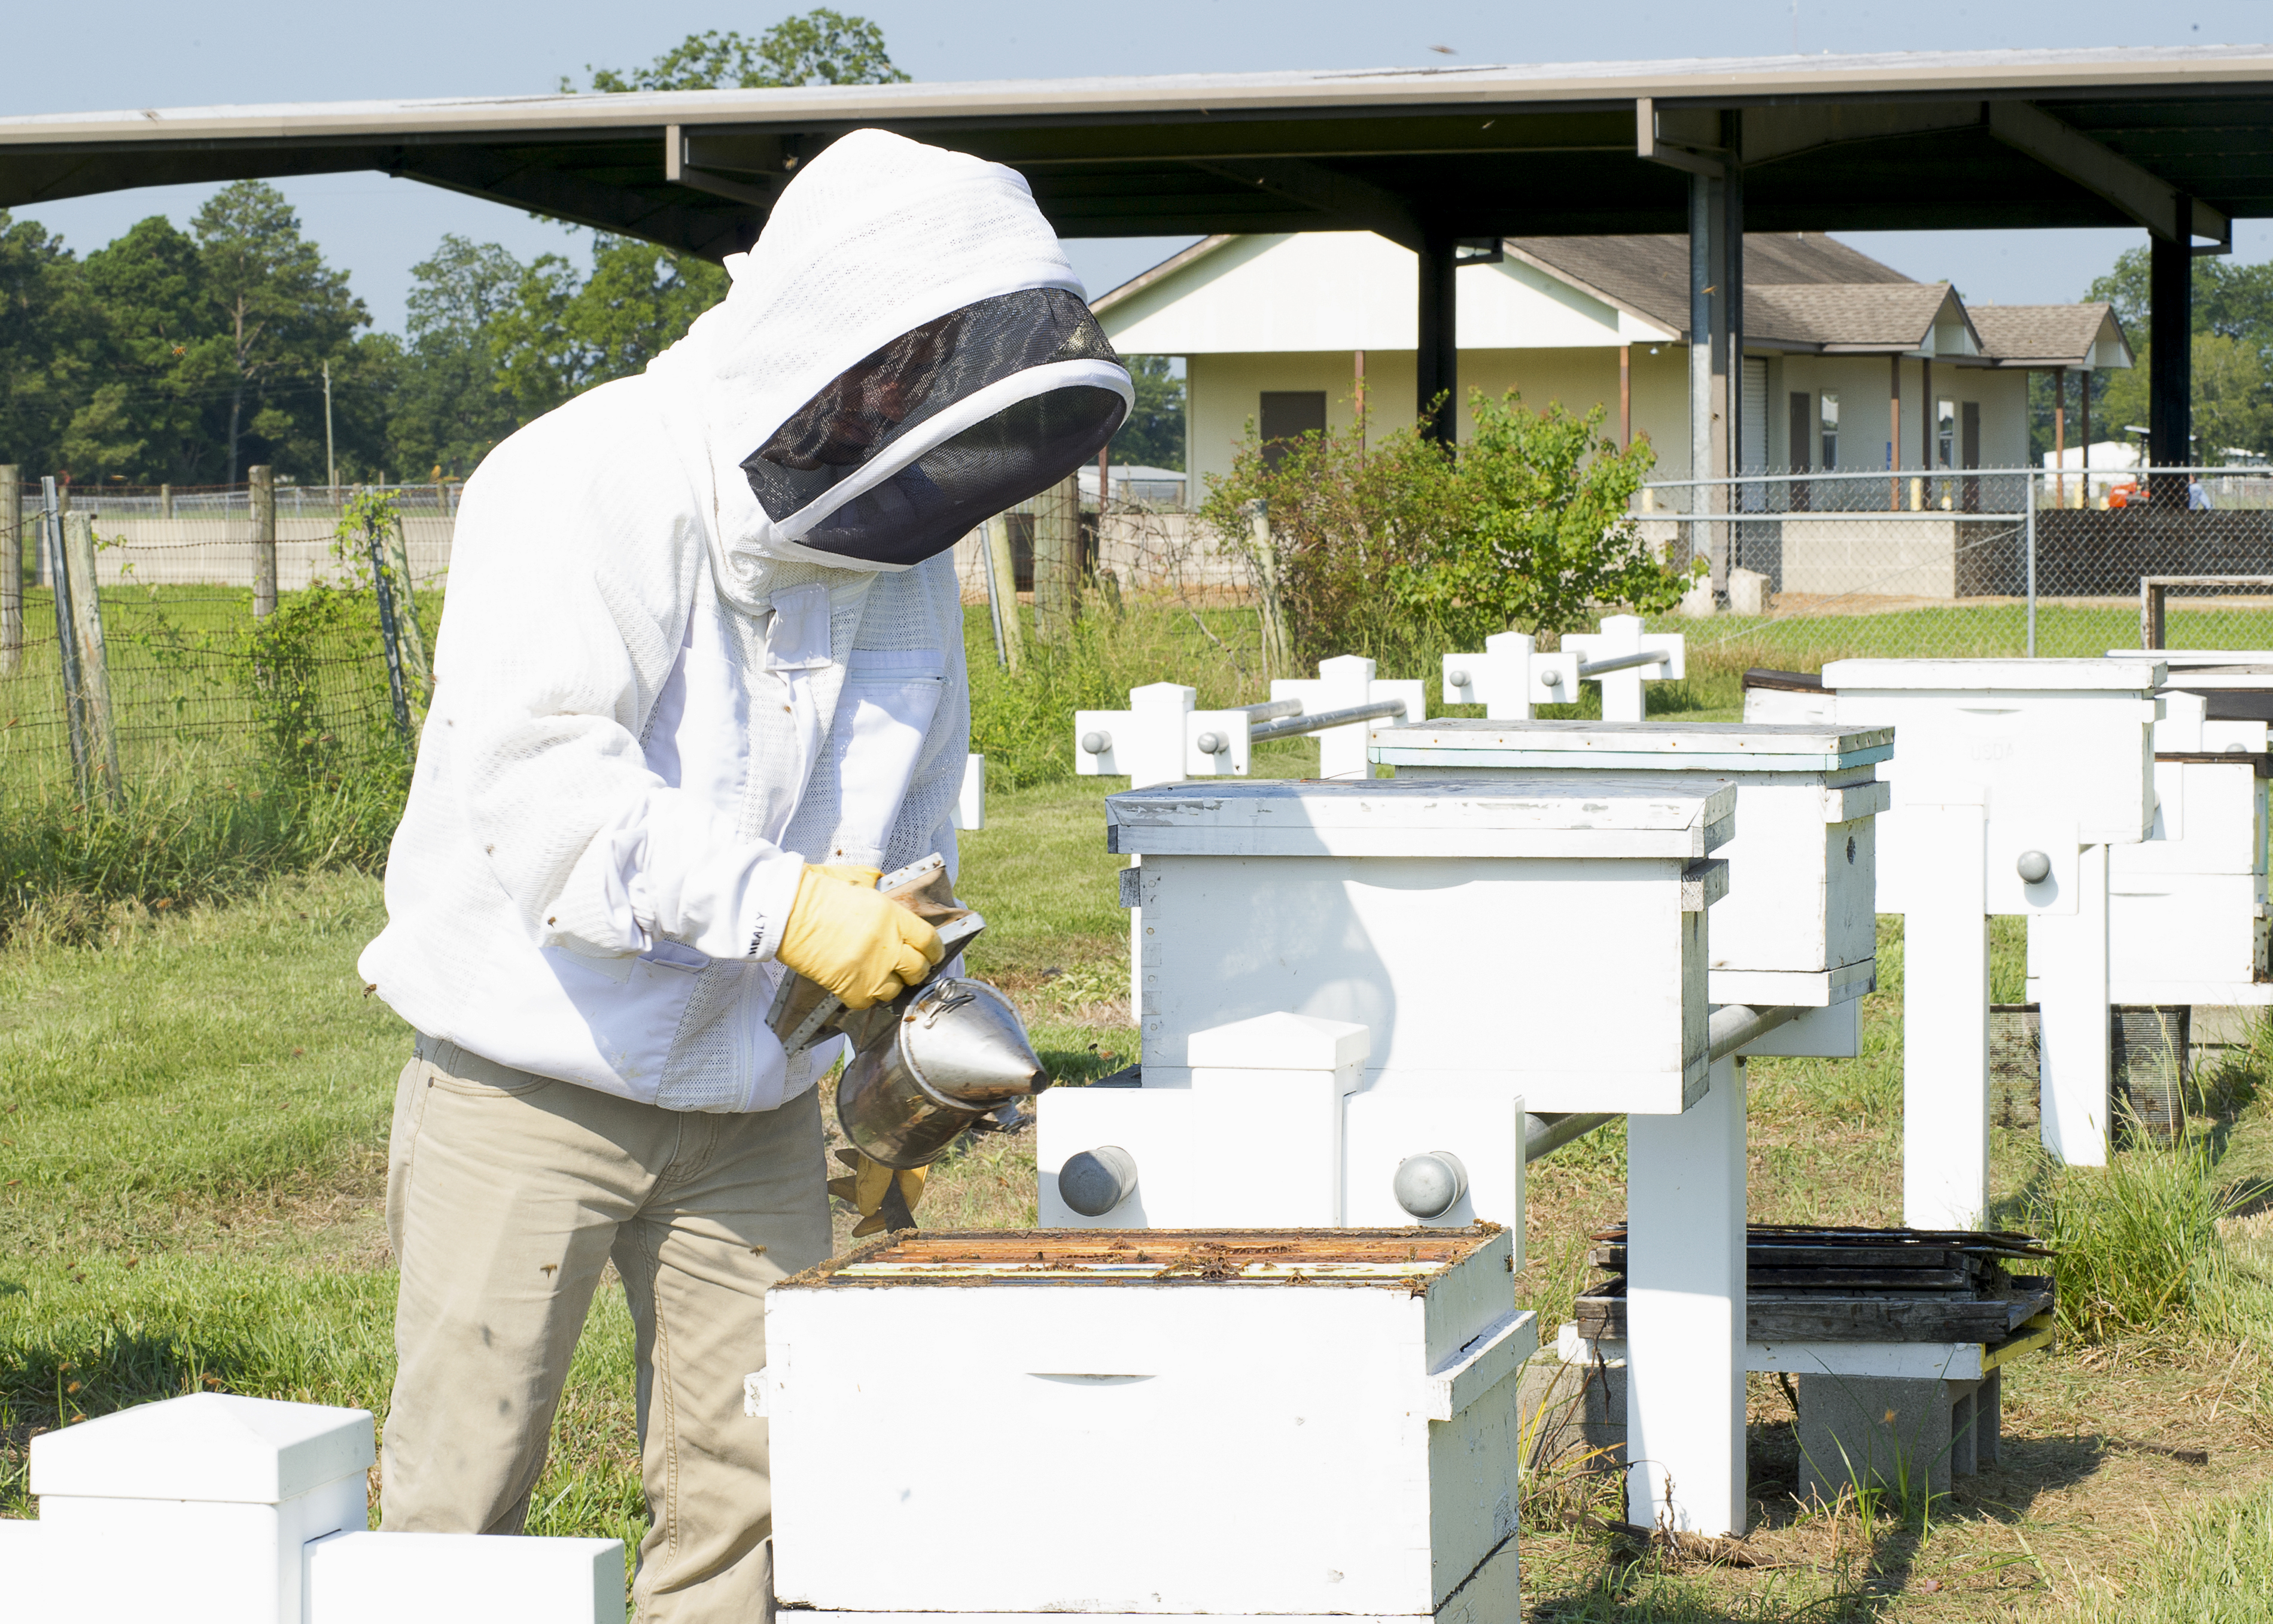 LSU AgCenter researchers receive USDA grant to study pollinator health